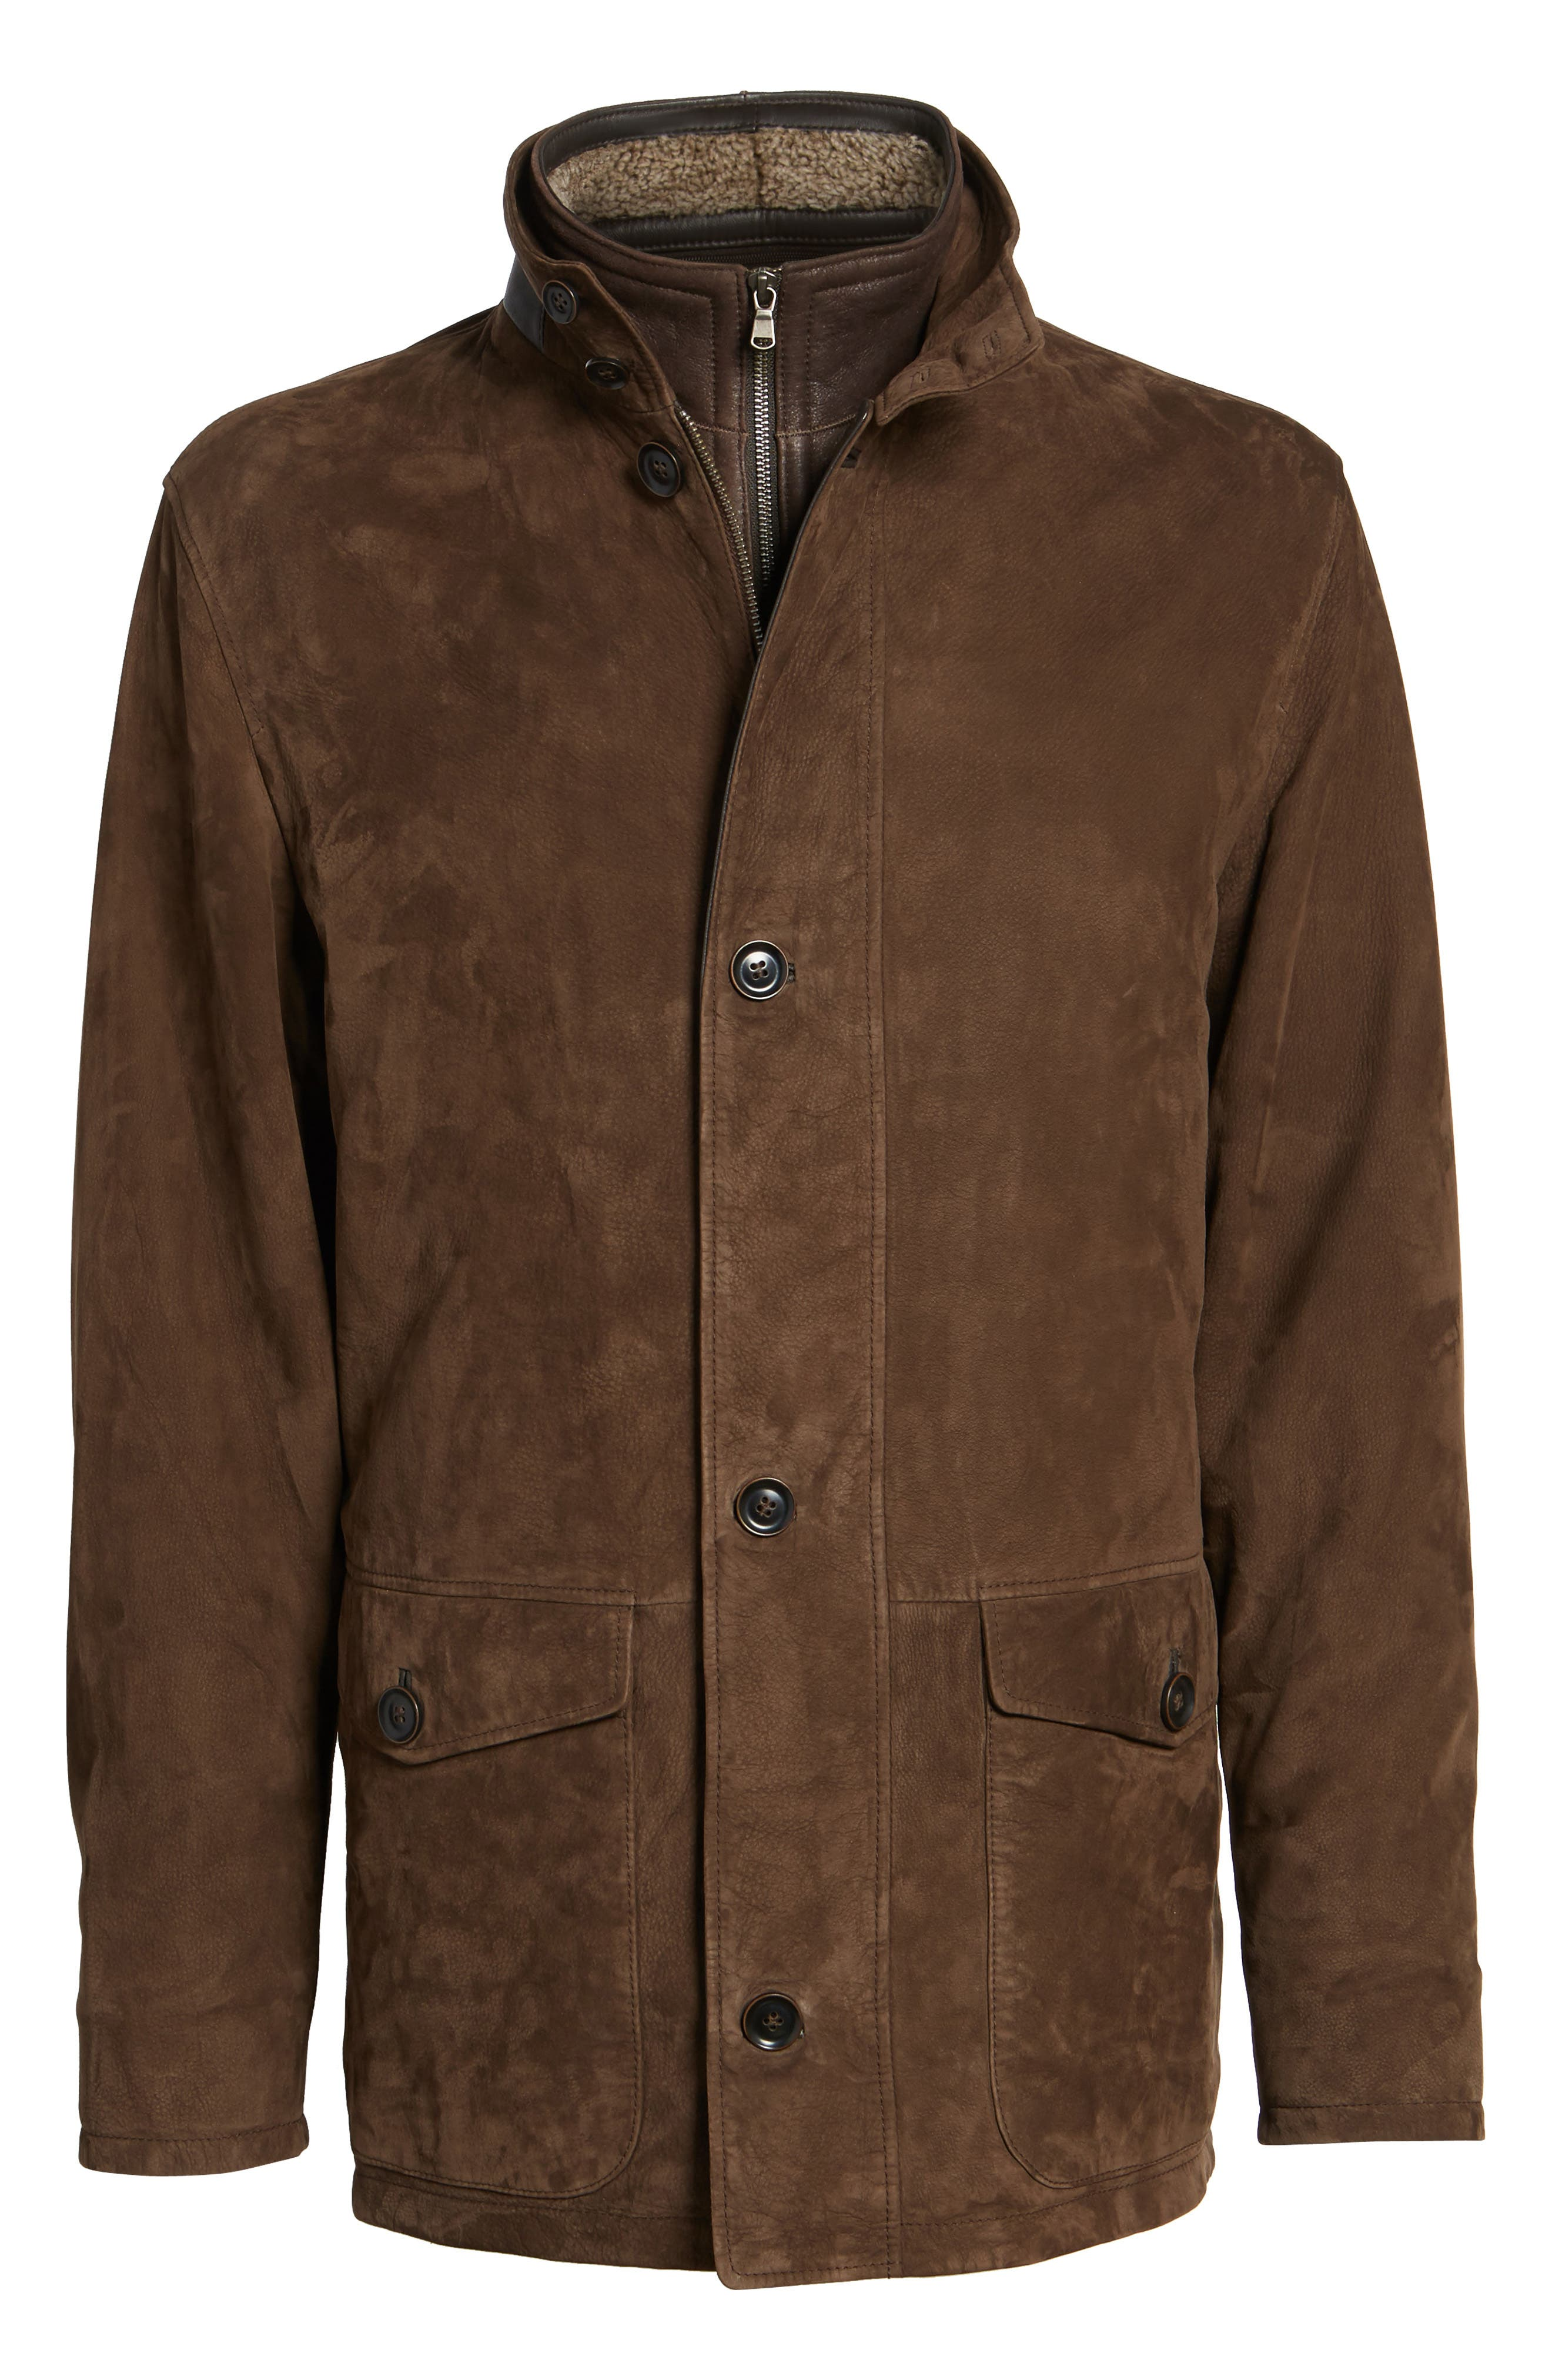 Steamboat Leather Jacket with Genuine Shearling Lined Bib,                             Alternate thumbnail 5, color,                             227